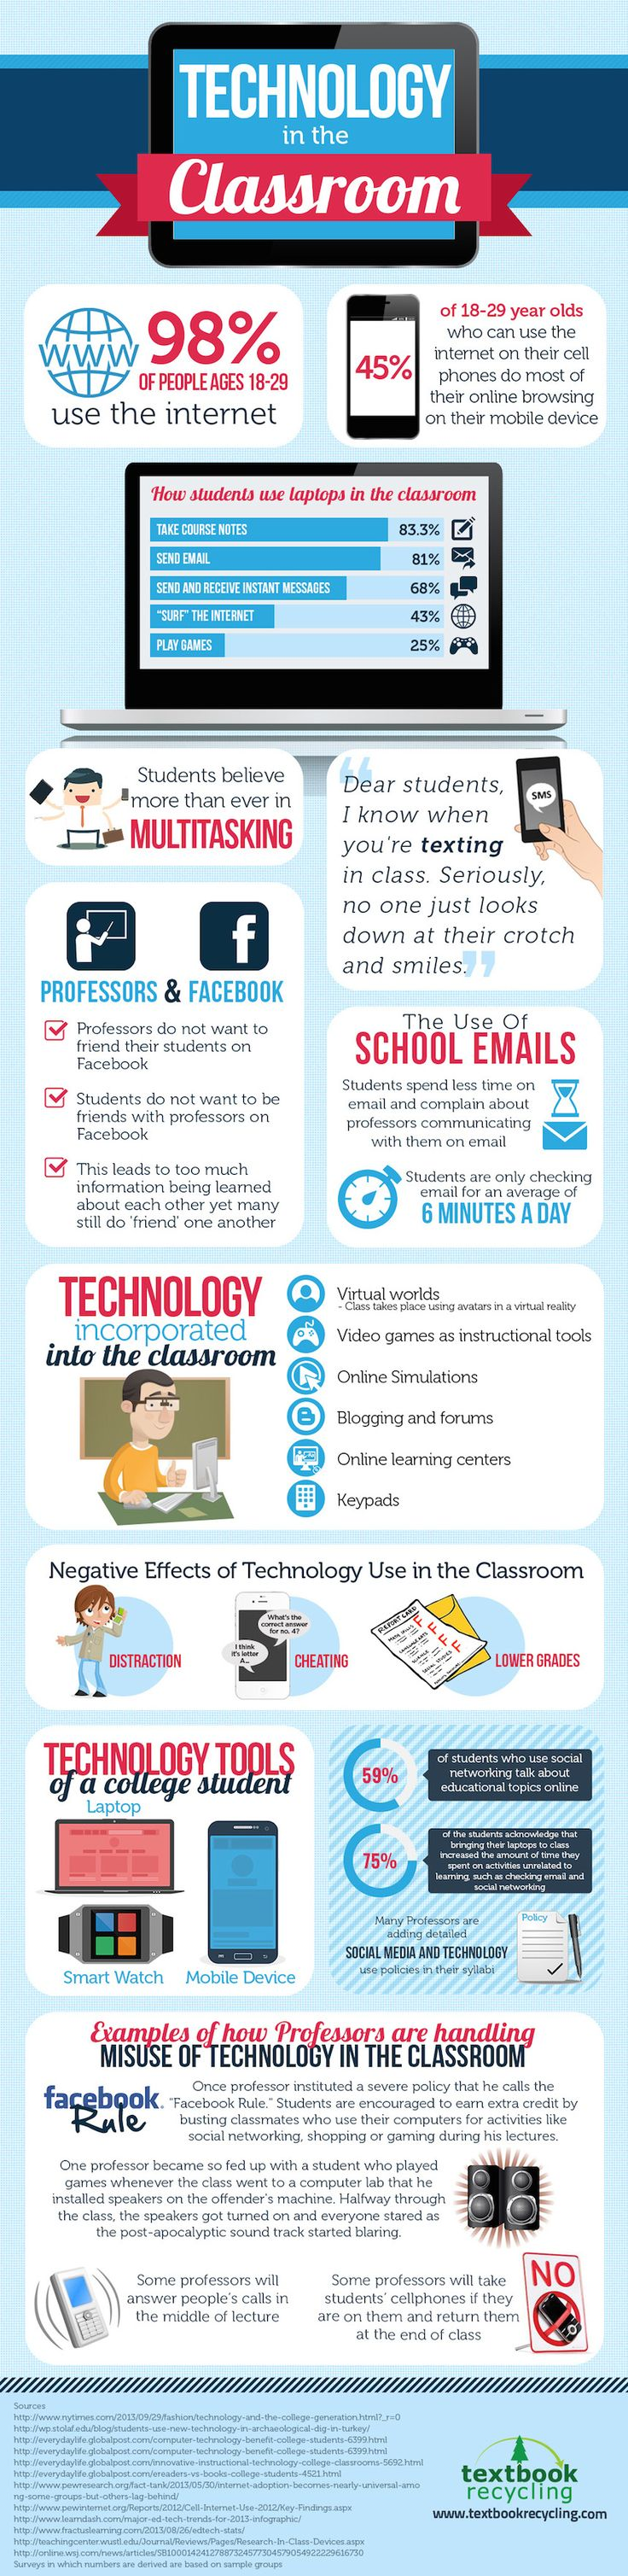 Educational Technology In The College Classroom Infographic - http://elearninginfographics.com/educational-technology-in-the-college-classroom-infographic/